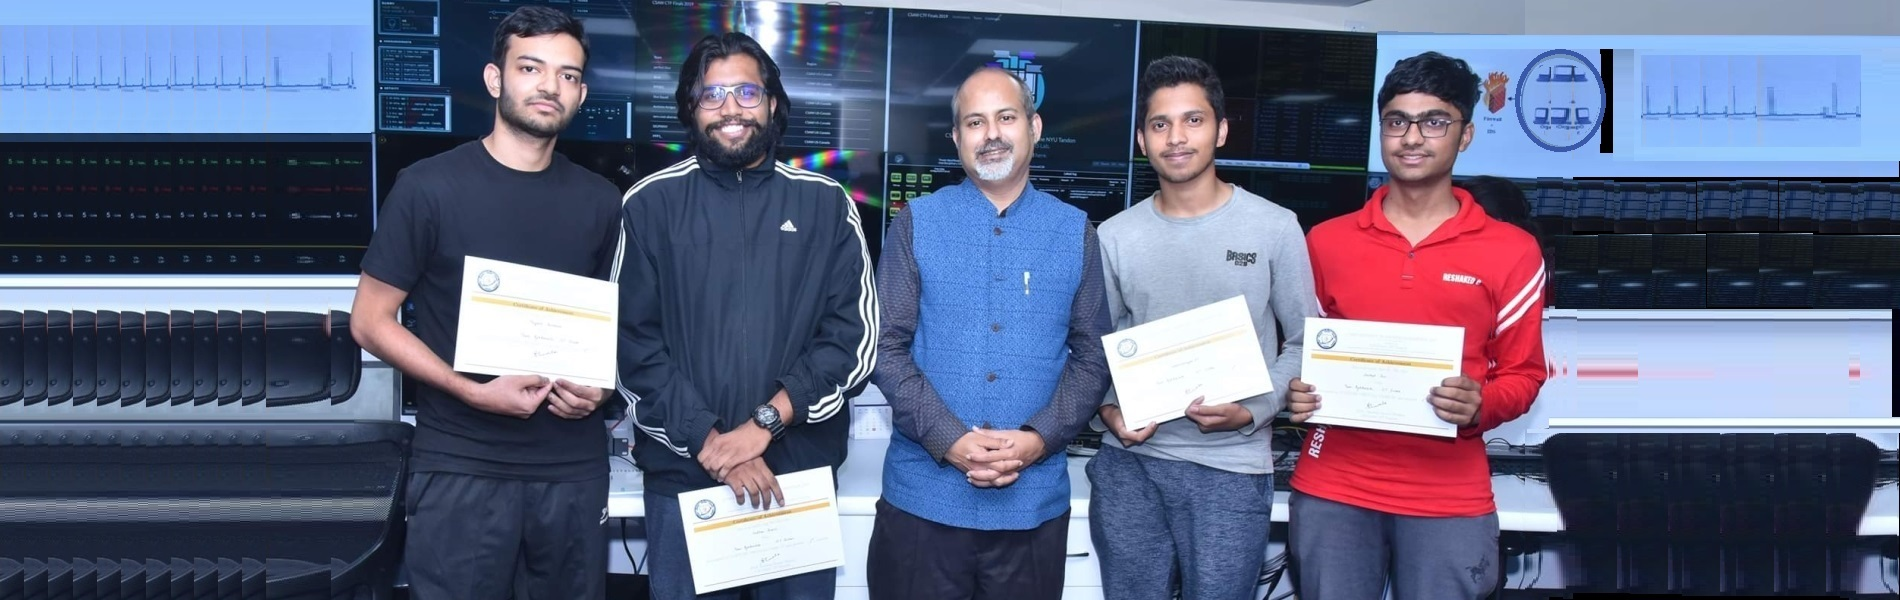 Team ByteBandits of CSE, IIT Indore secured 1st place in India and 9th globally in CSAW CTF (Finals) 2019 held at IIT Kanpur.